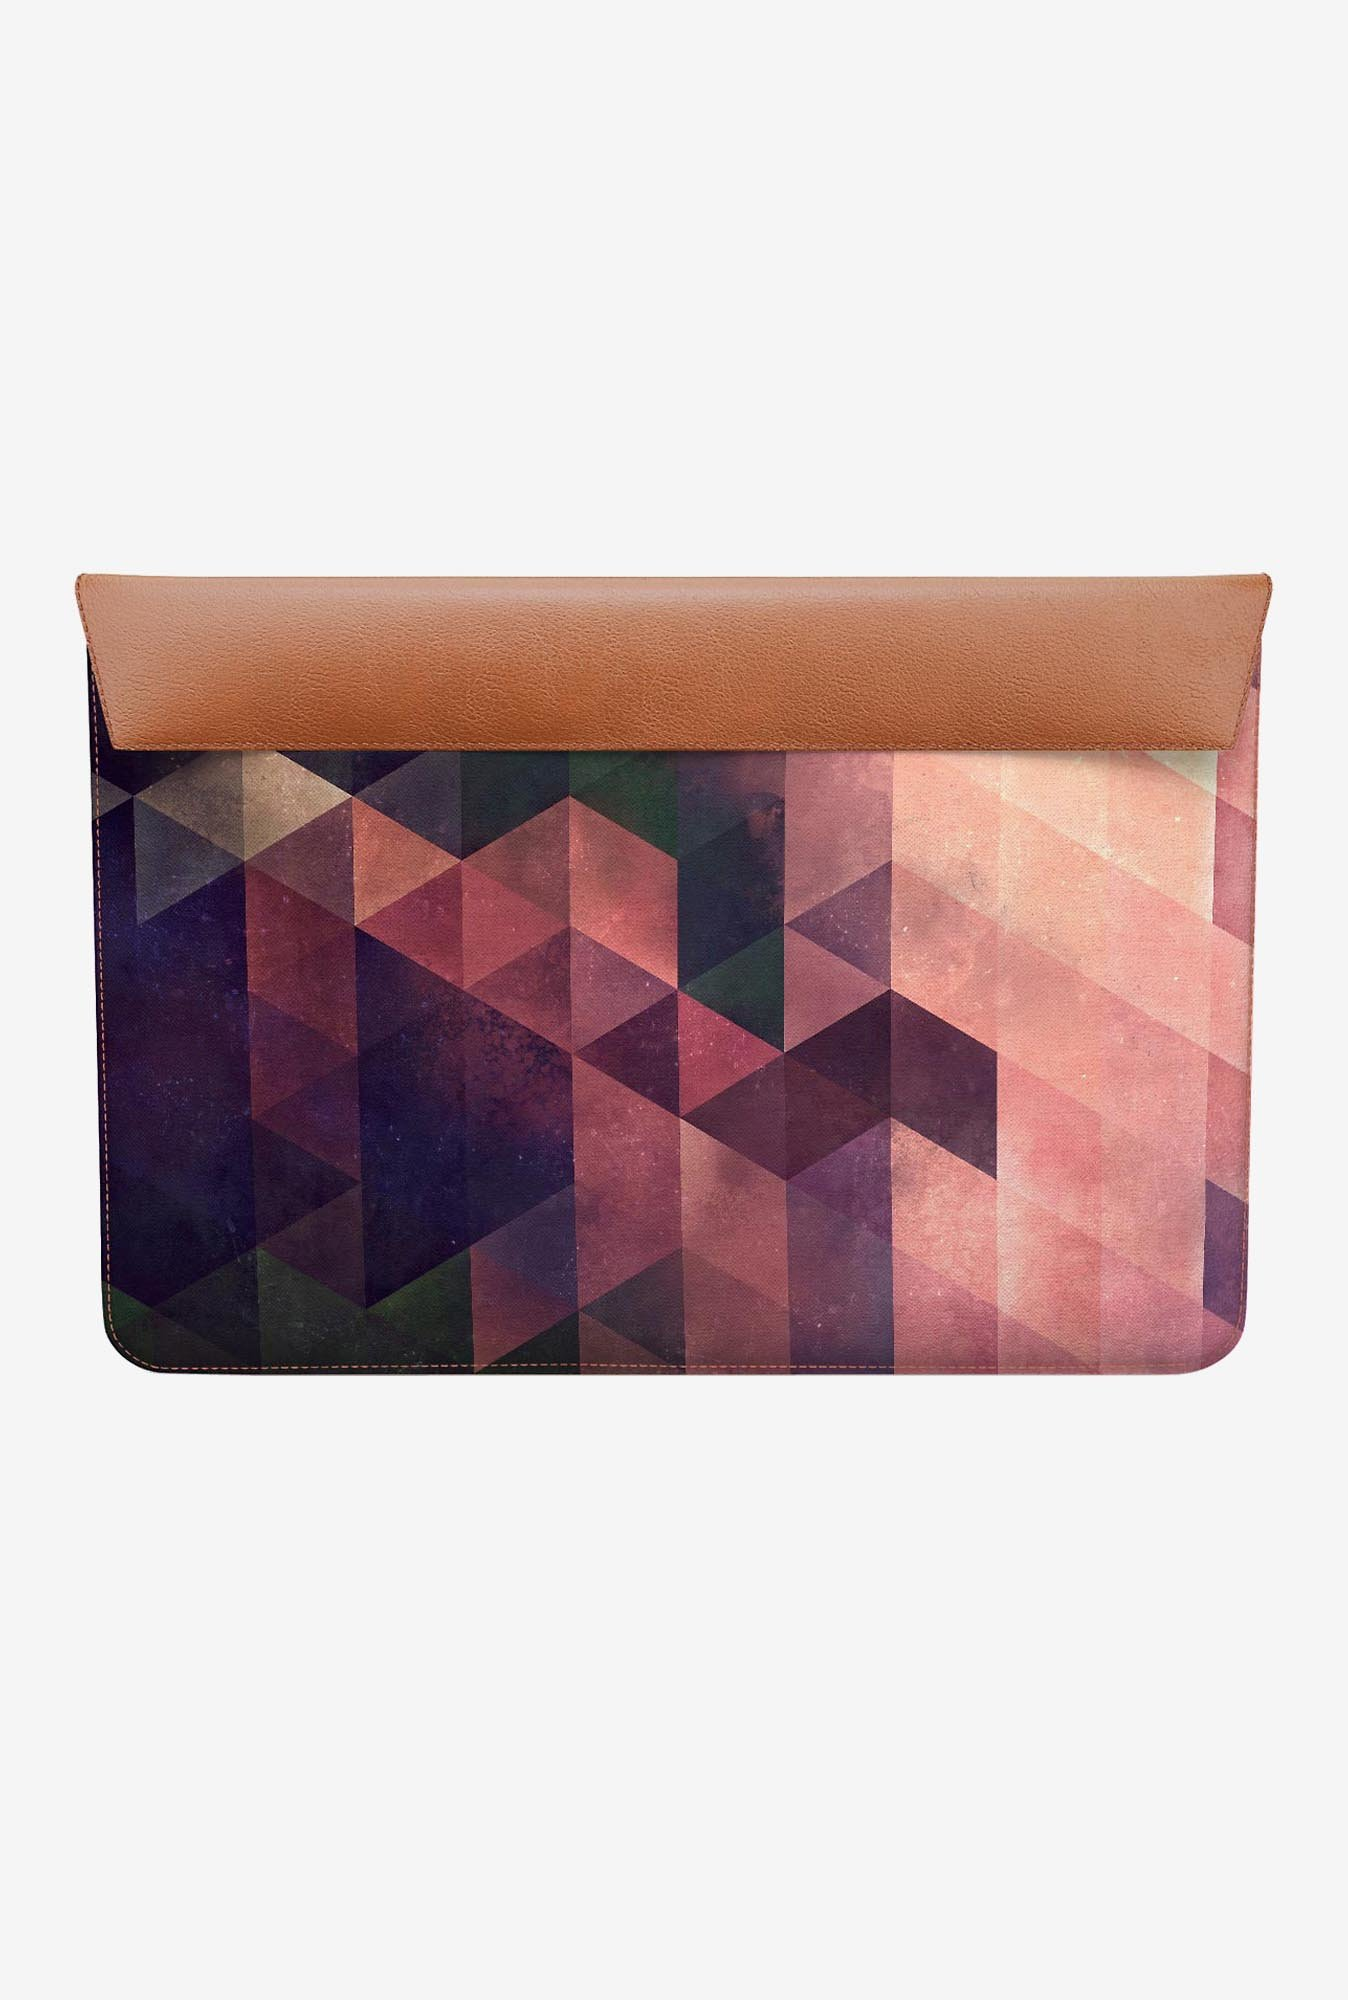 "DailyObjects Fyt Yrms Macbook Air 11"" Envelope Sleeve"